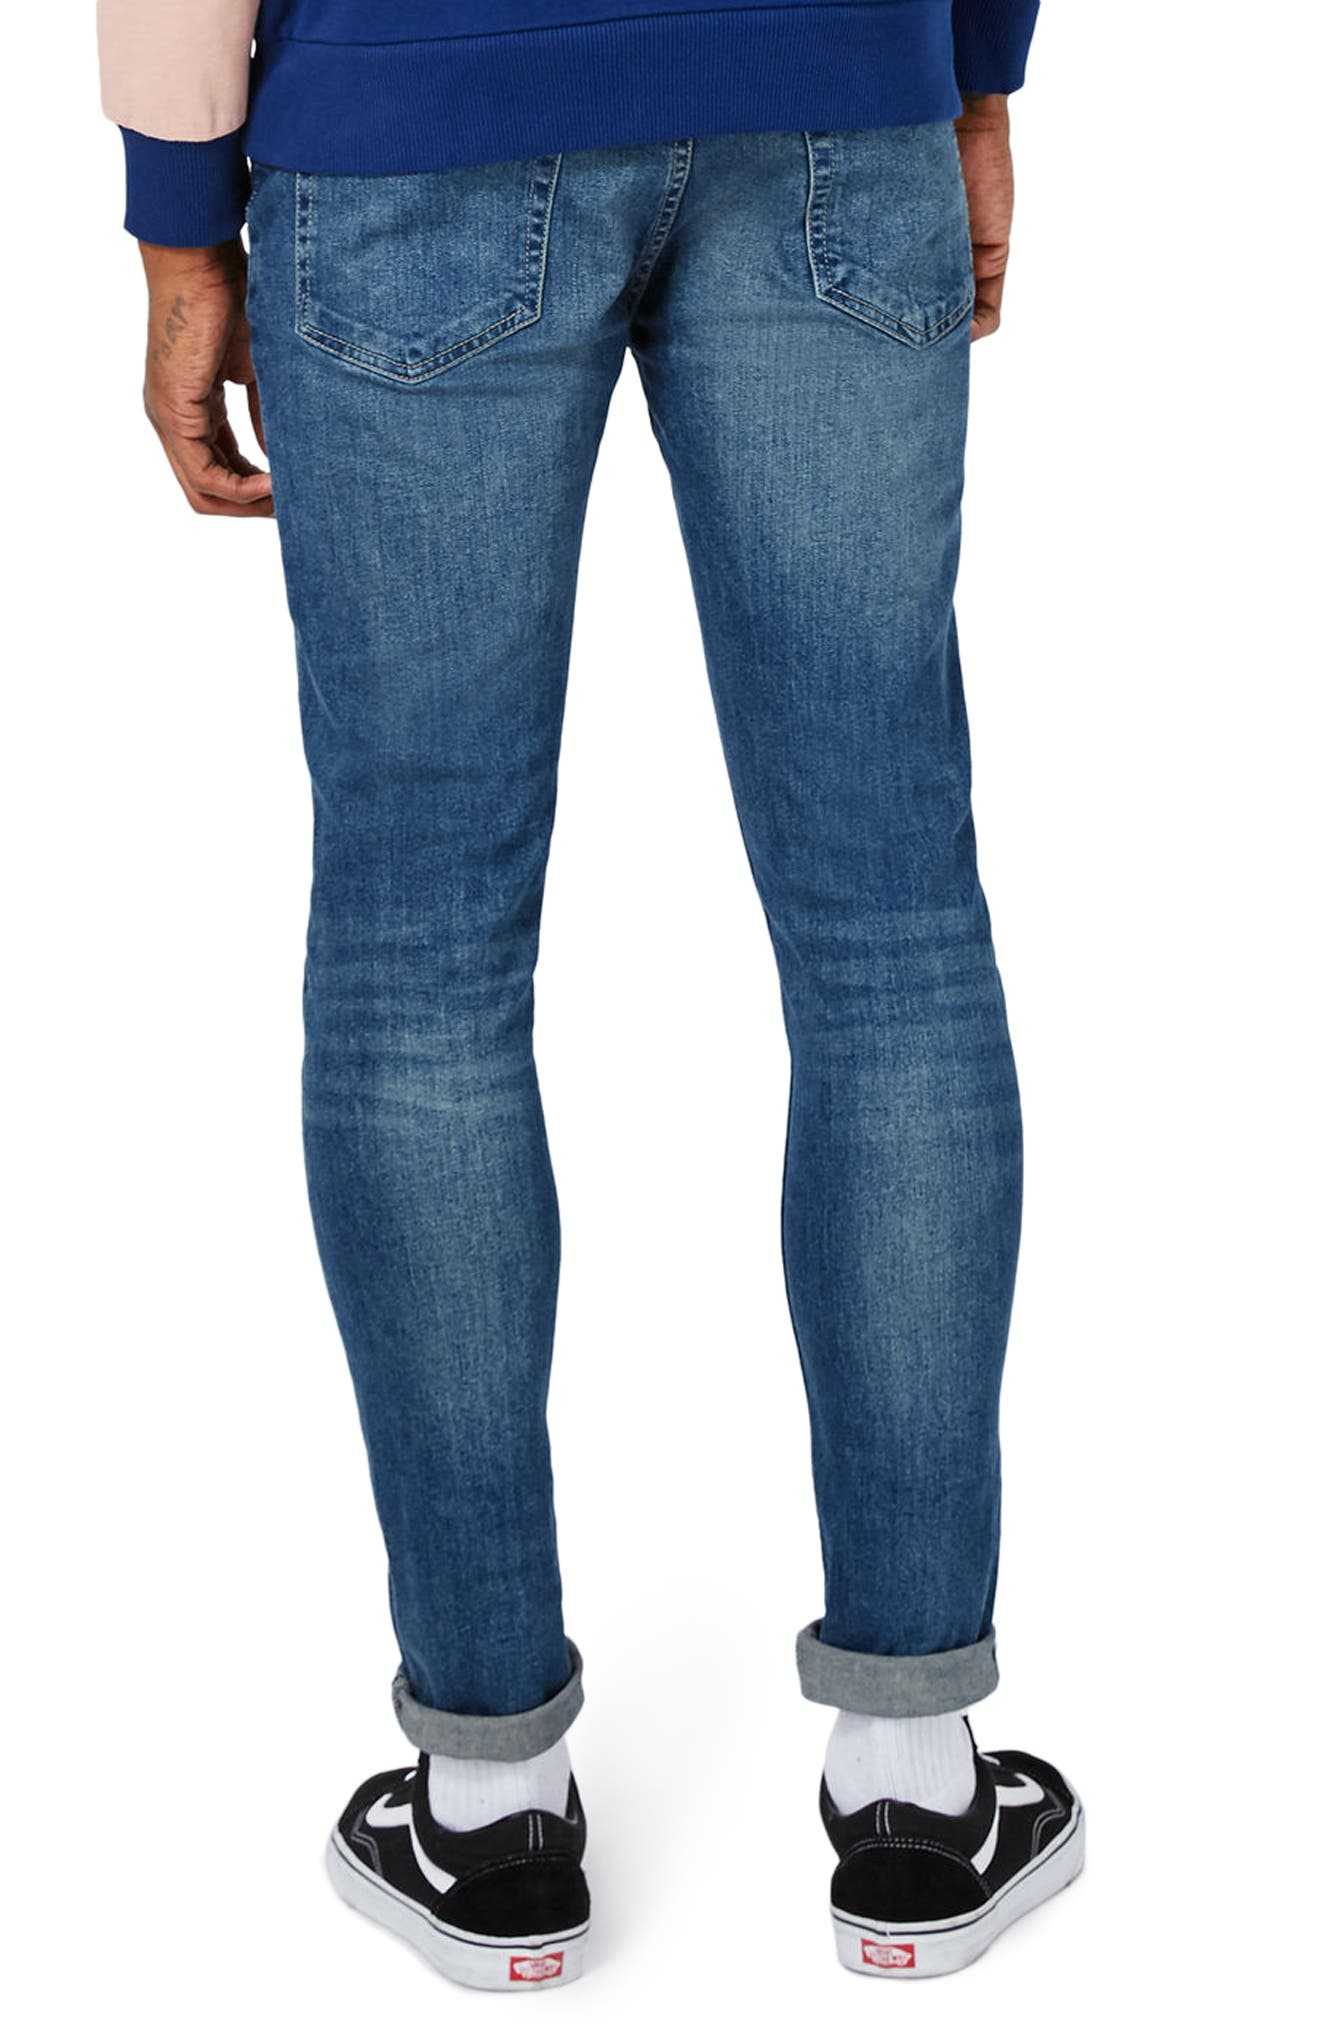 Stretch Skinny Jeans,                             Alternate thumbnail 2, color,                             Mid Blue